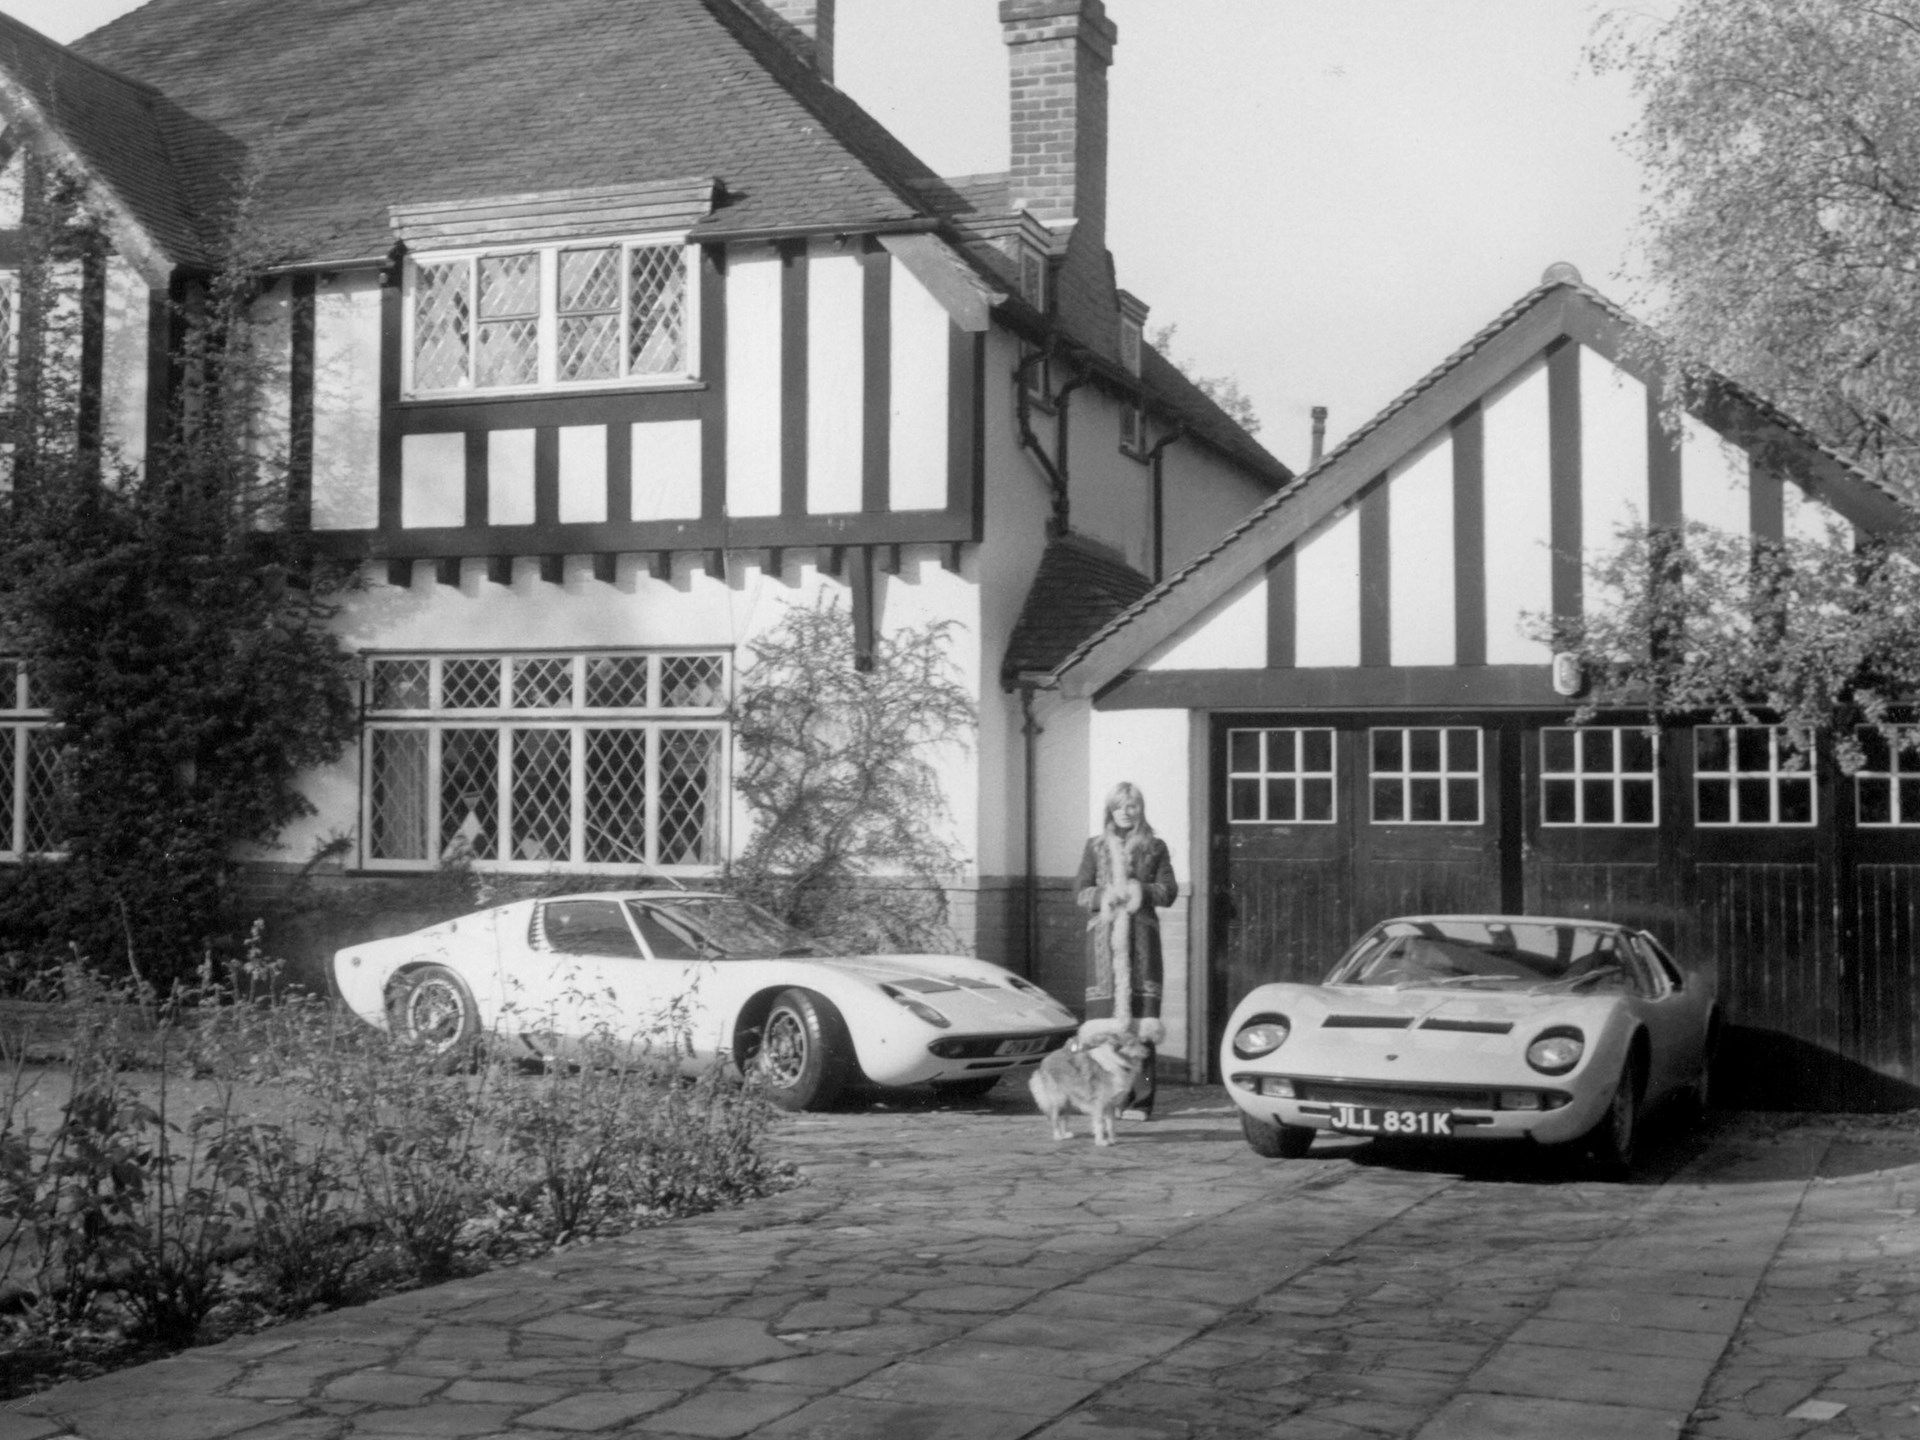 Rod Stewart's girlfriend poses with his Lamborghini Miuras outside his home in Southgate circa 1971-1972.